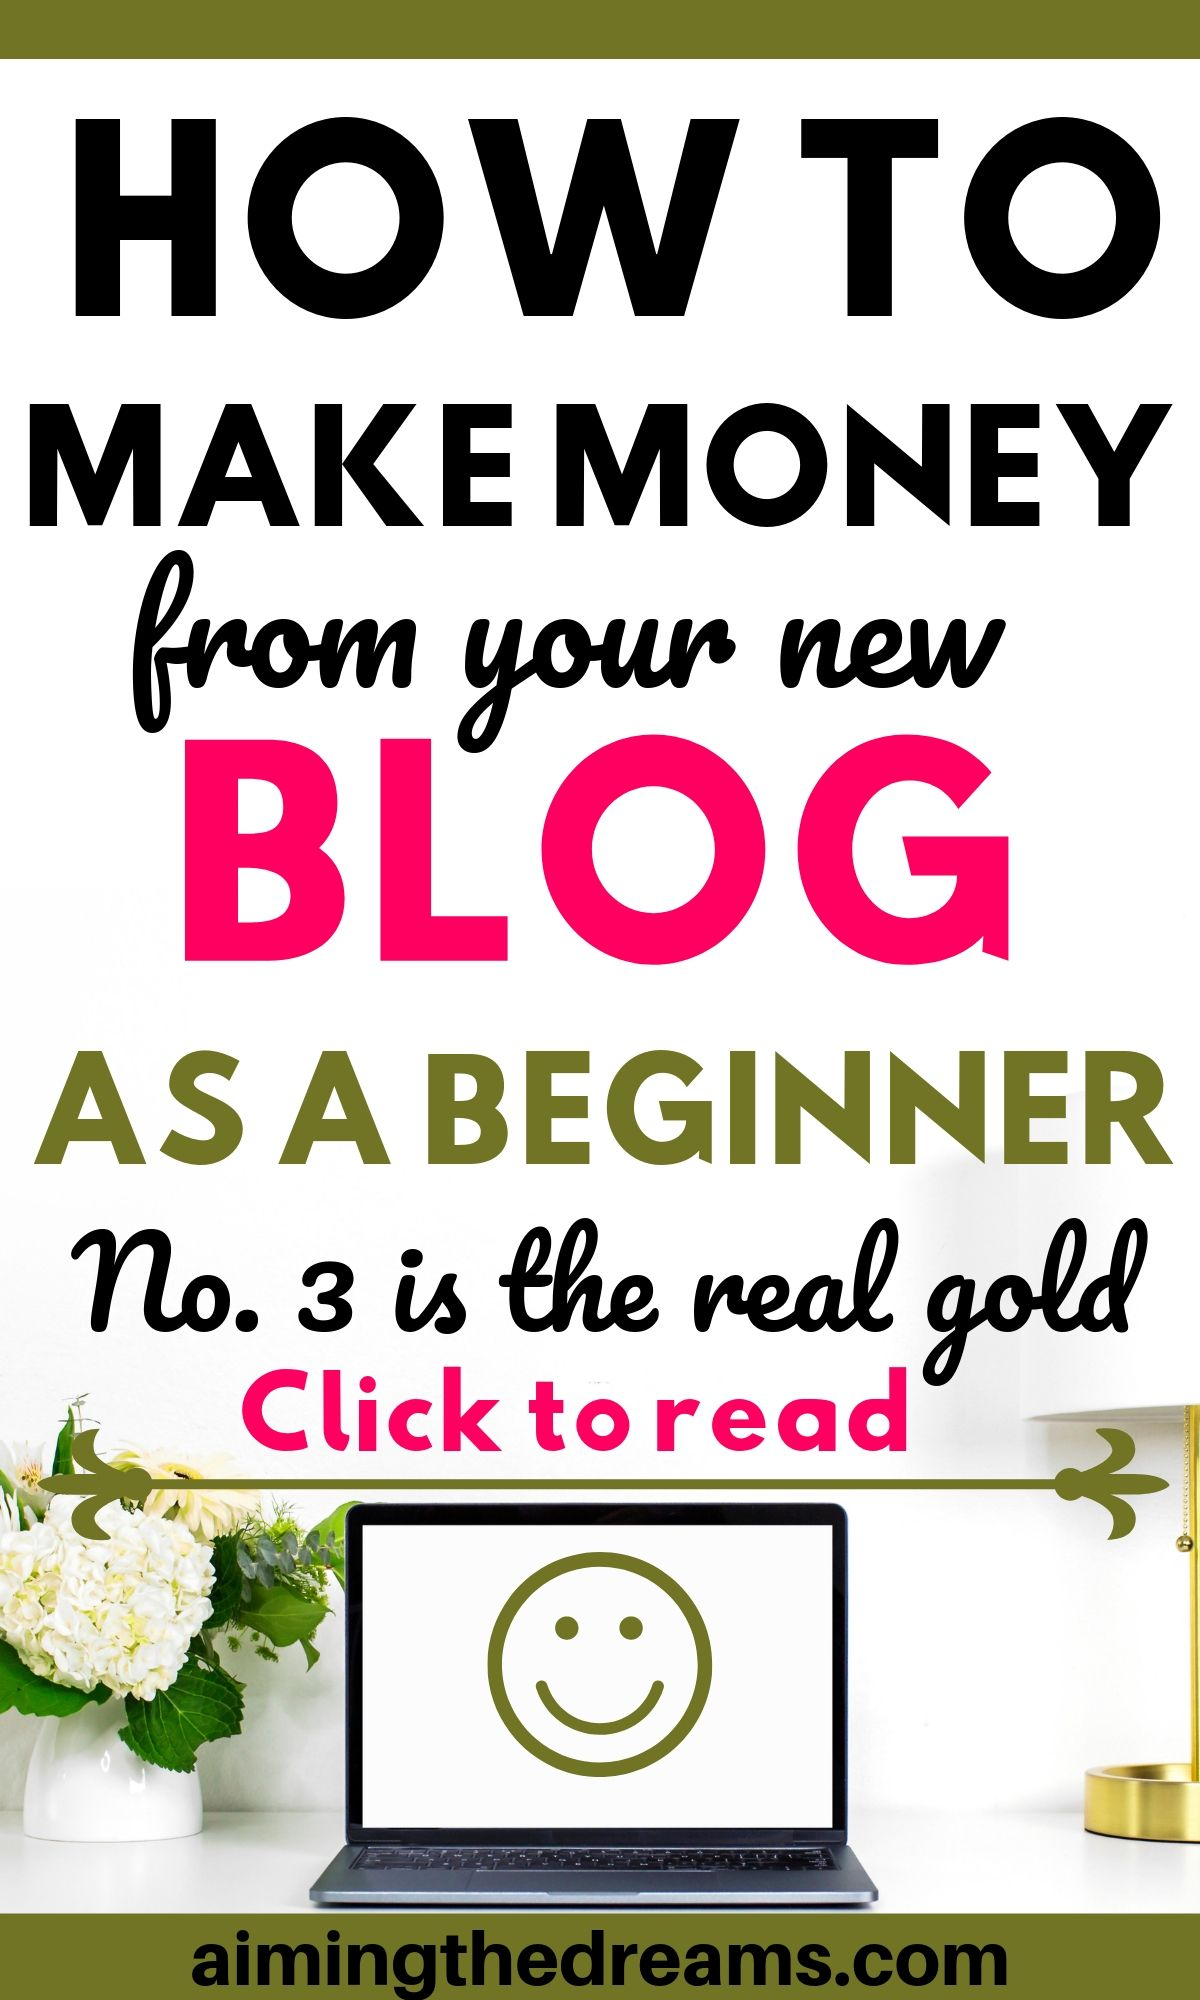 How to make money blogging as a beginner from your new blog.